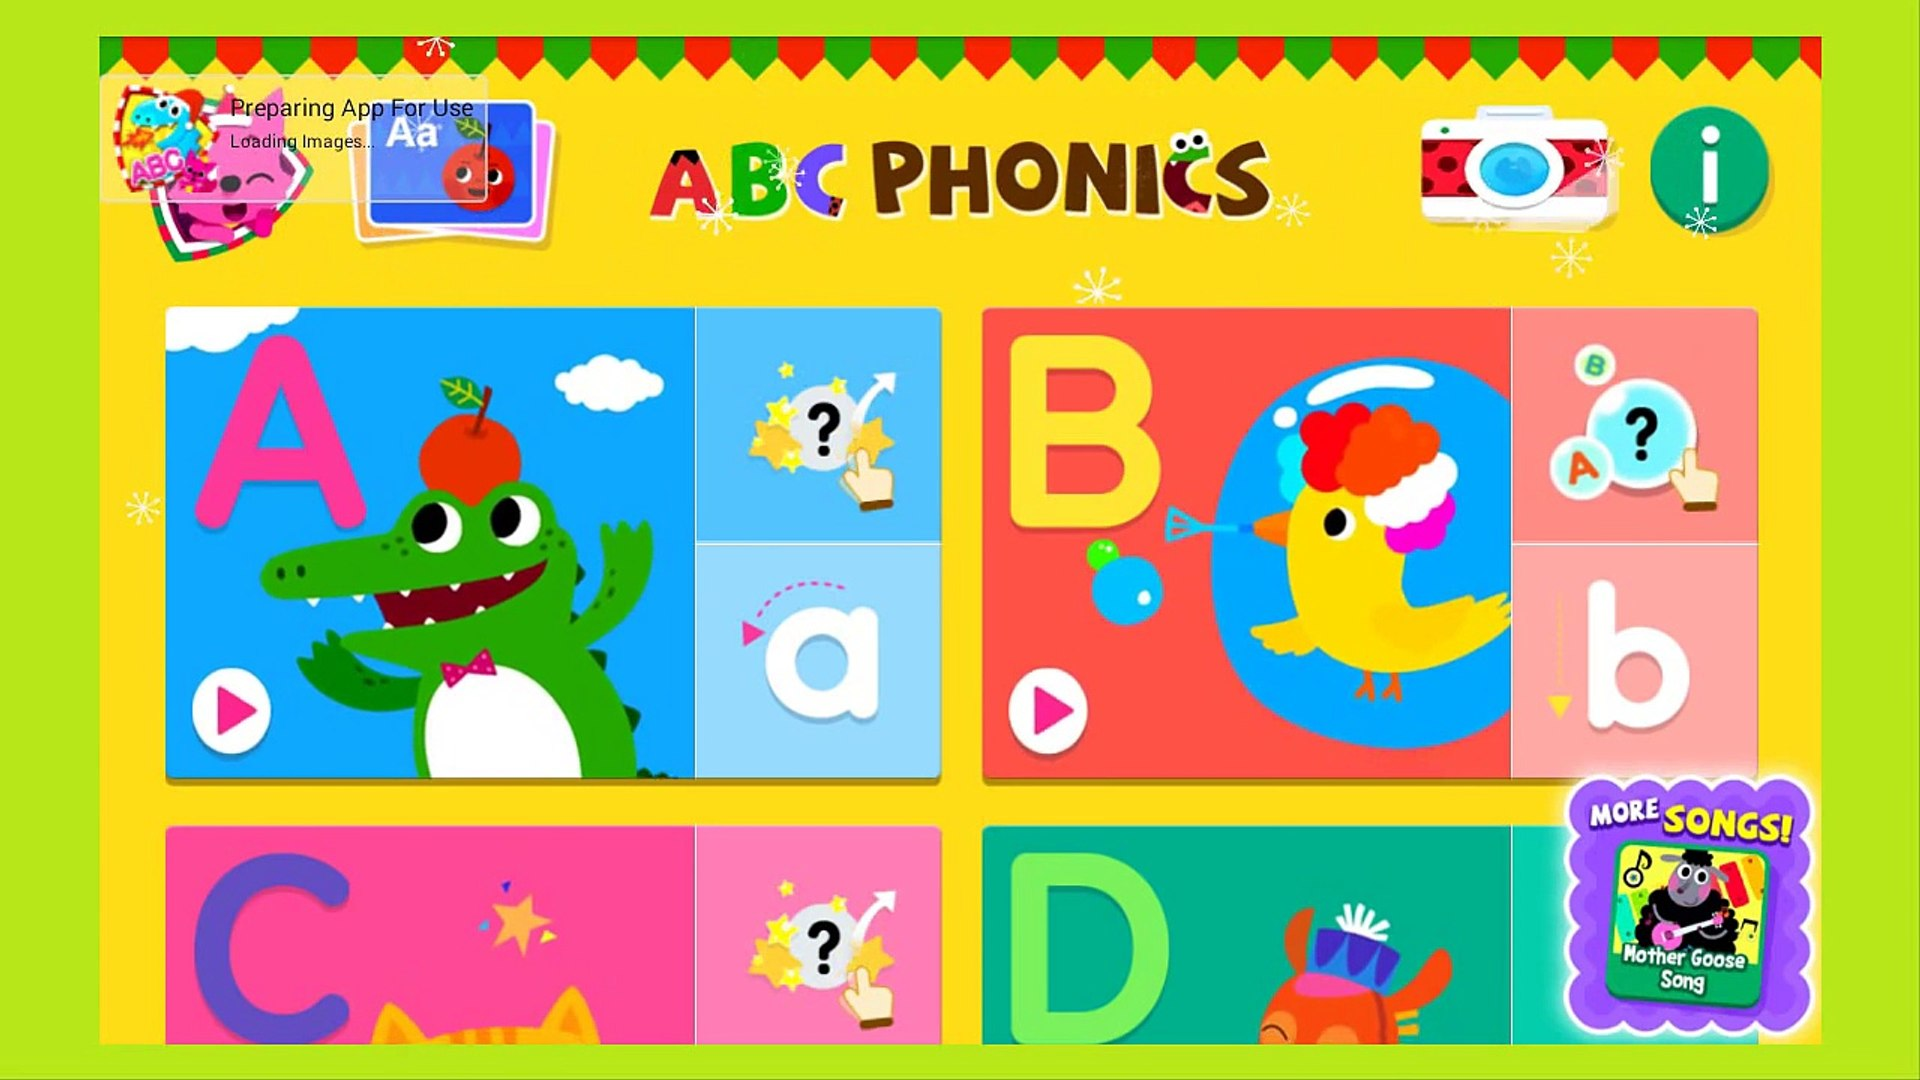 ABC Phonics - Kids Learn Alphabet - Education App gameplay video for Kids